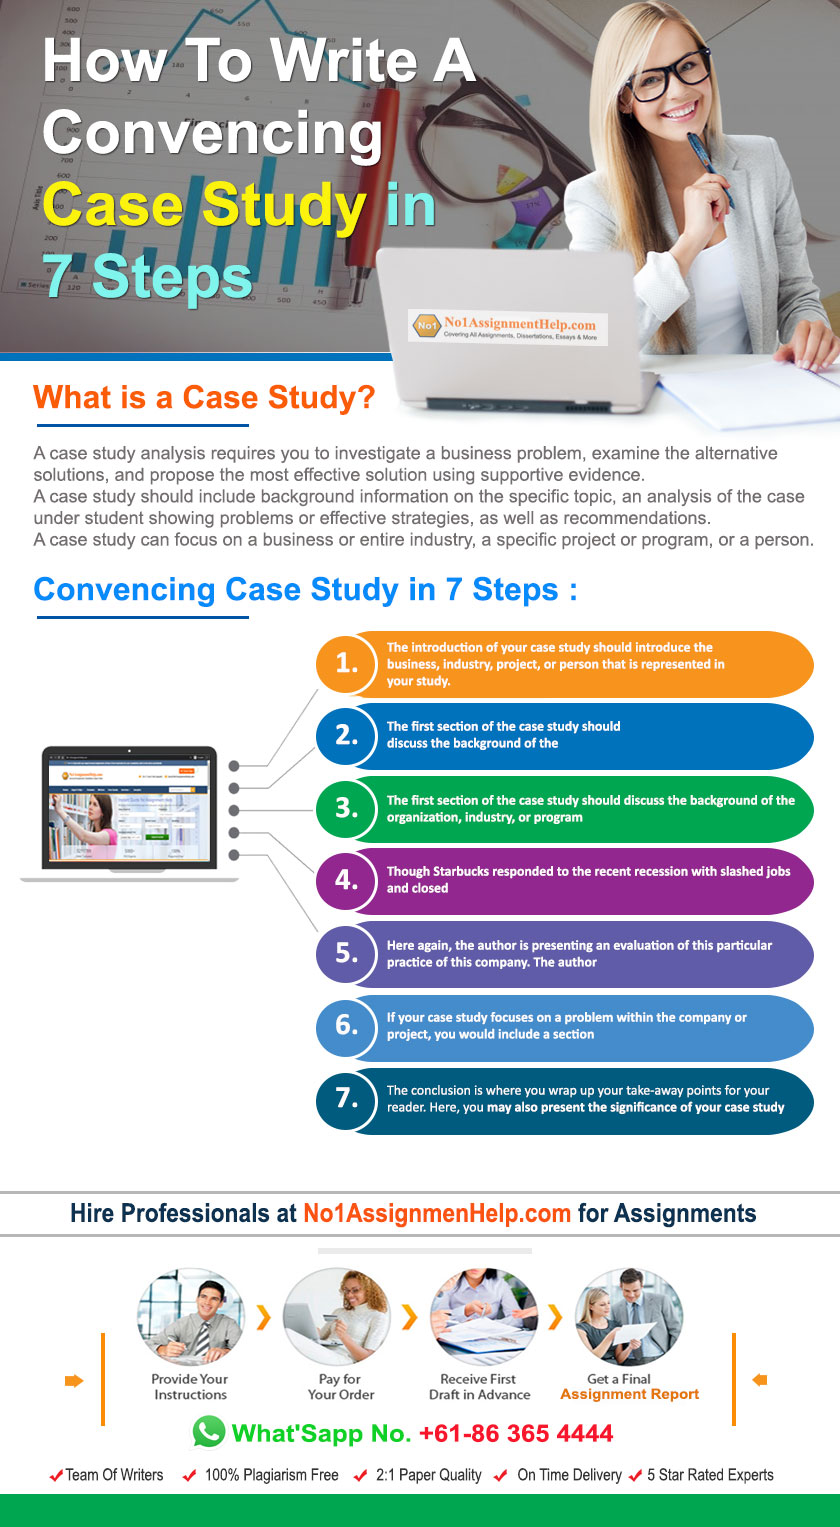 Case Study Steps To Write